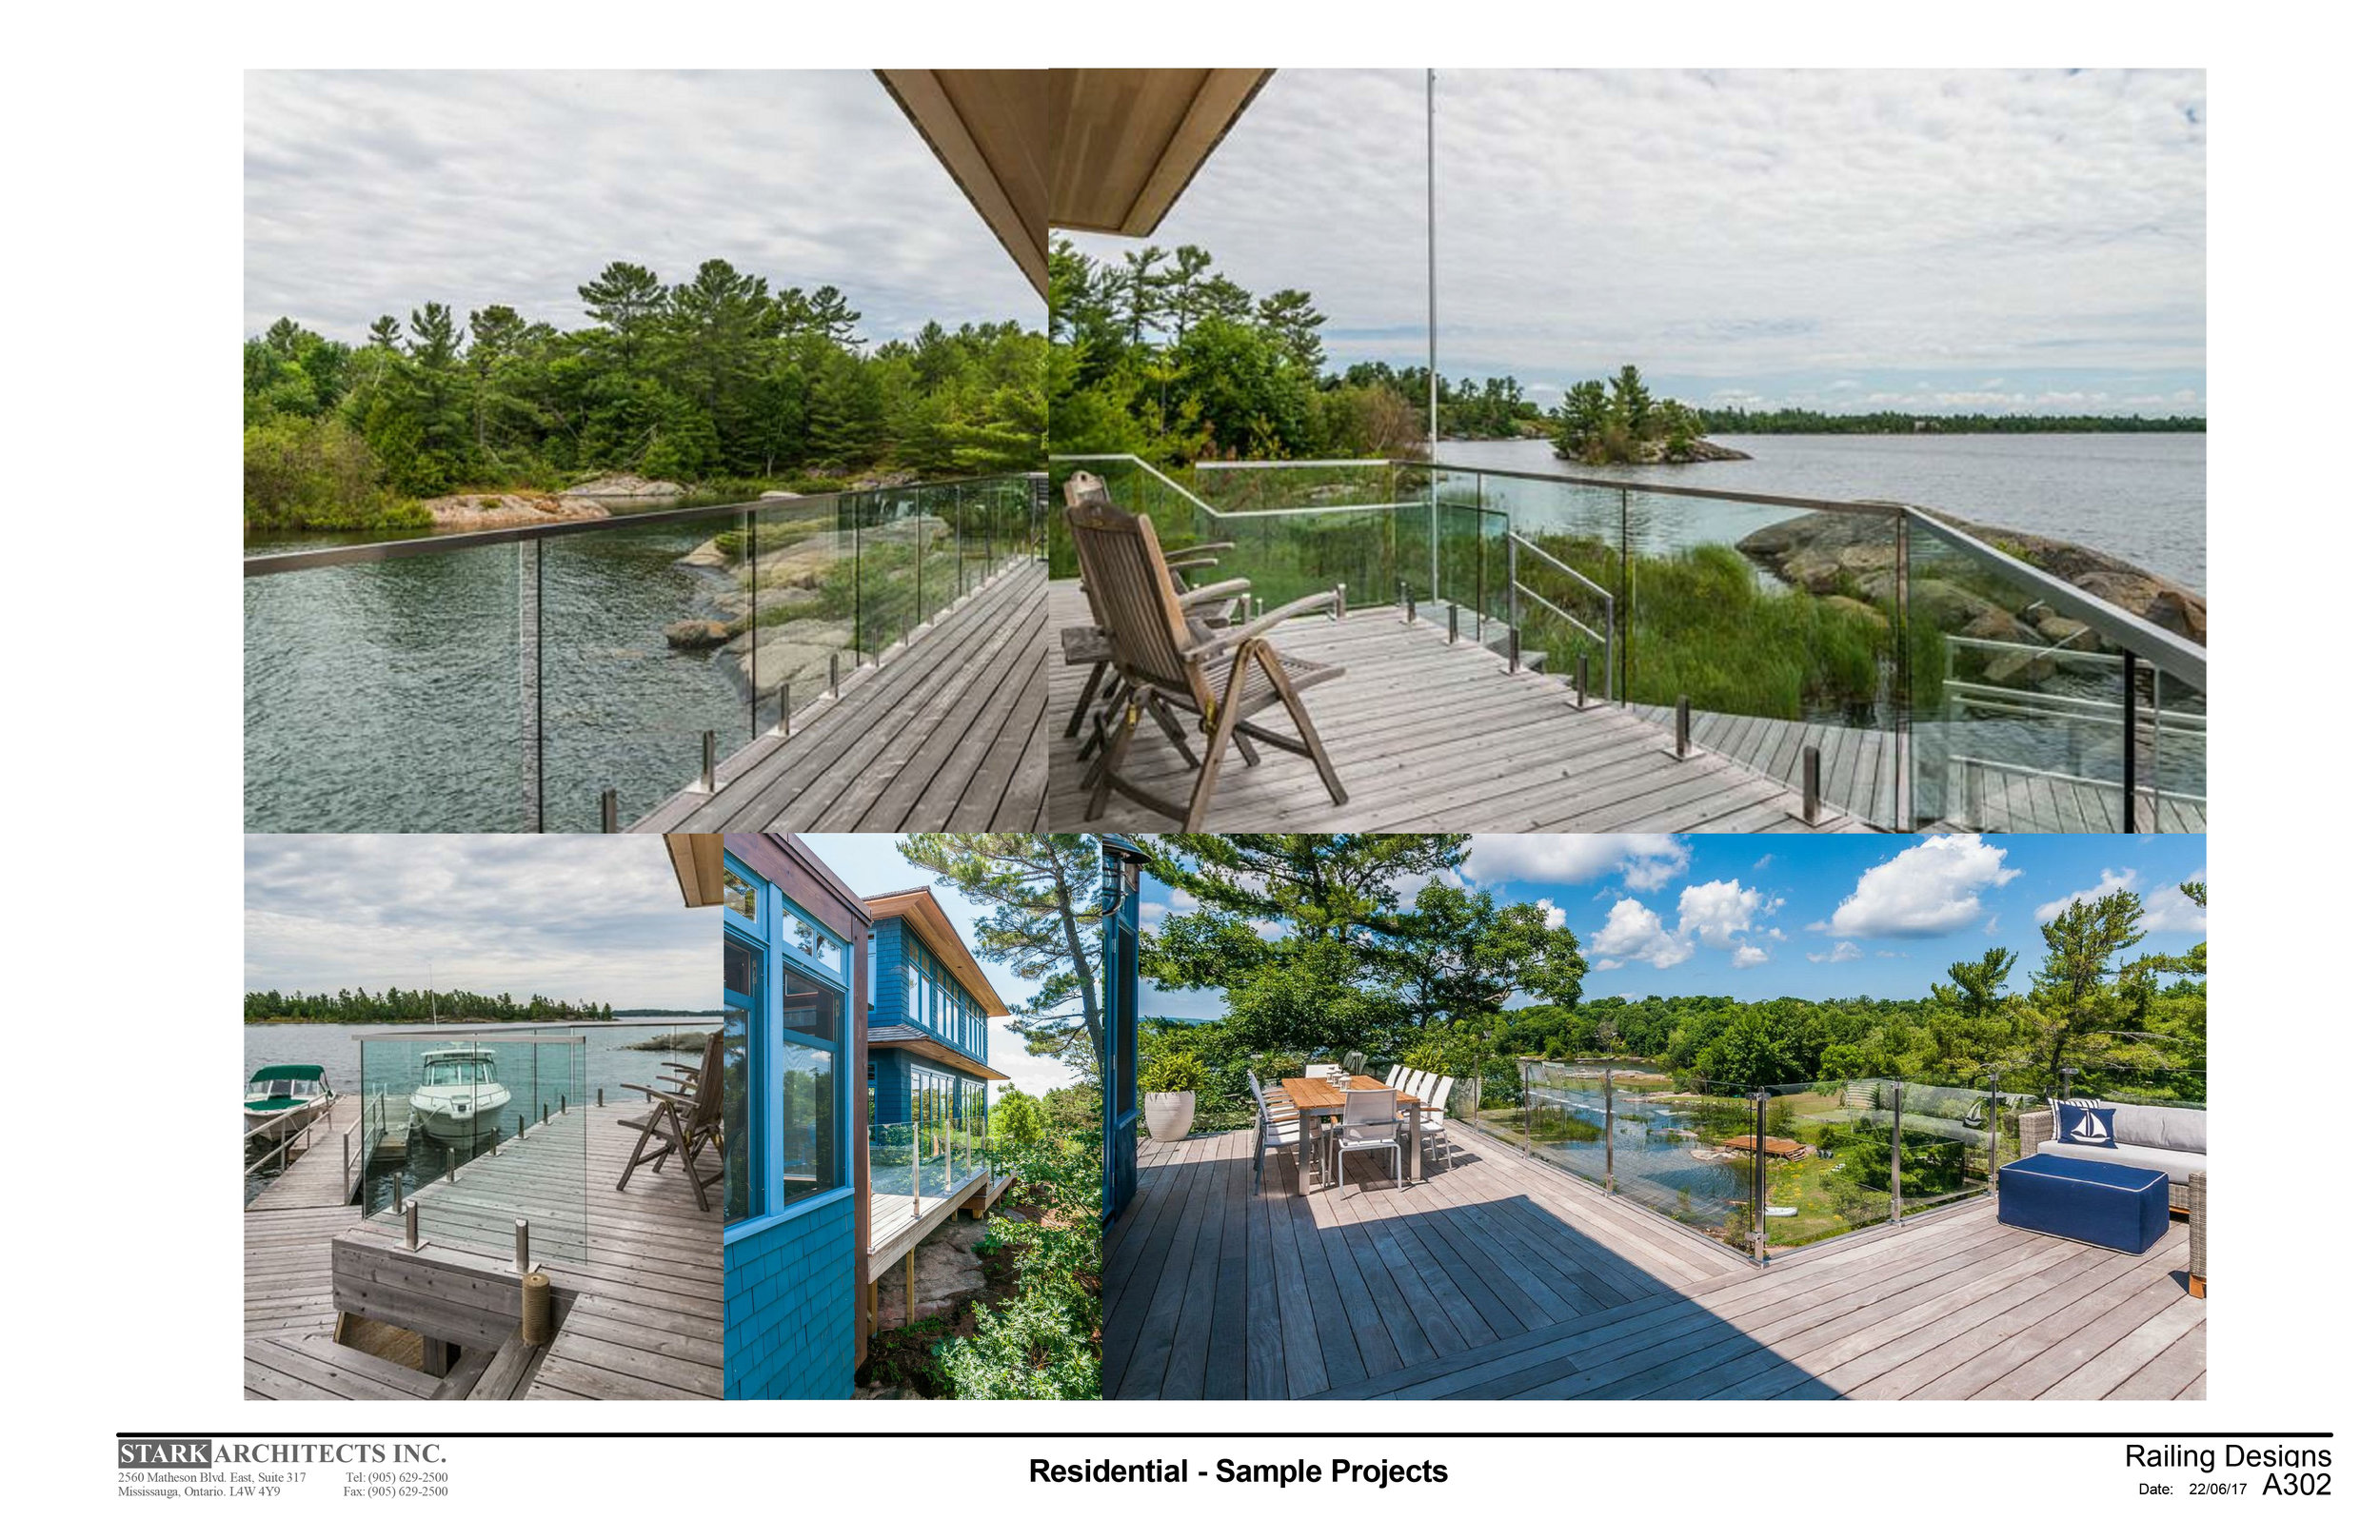 STARK ARCHITECTS INC - SAMPLE PROJECTS - RESIDENTIAL - 22-06-17 - A302.jpg